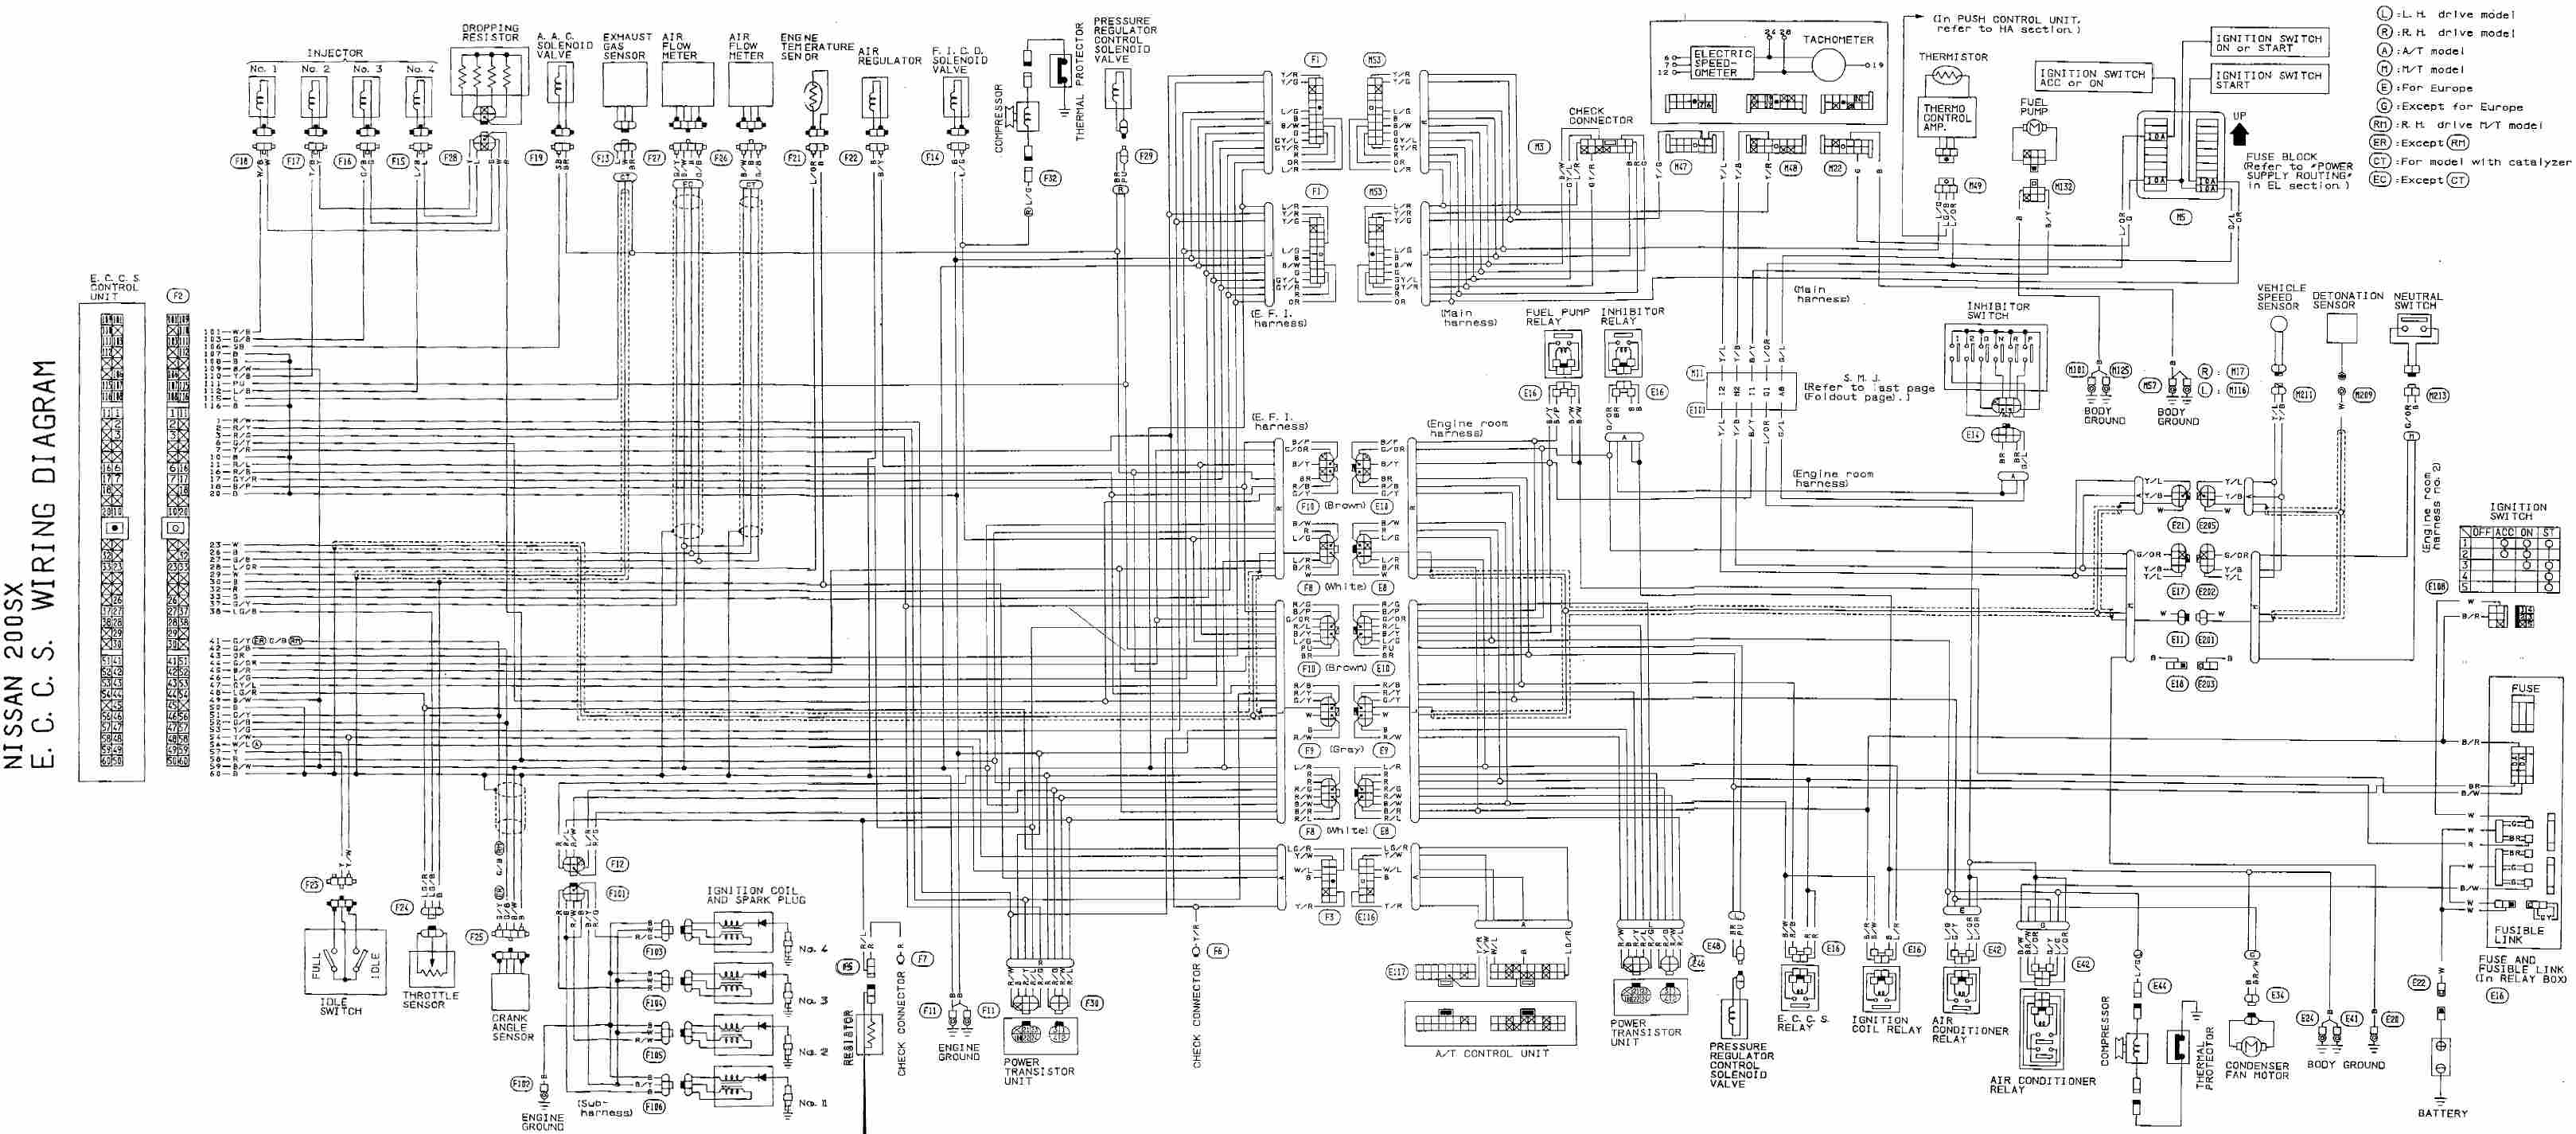 97 nissan 240sx wiring diagram with 1990 Nissan Truck Wiring Diagram on 97 240sx Wiring Diagram besides 1990 240sx Ka24e Vacuum Diagram furthermore 93 Nissan Altima Engine Diagram together with Nissan Vg33e Engine Diagram Vacuum besides 2002 Chevy Tahoe Ac Actuator Diagram.